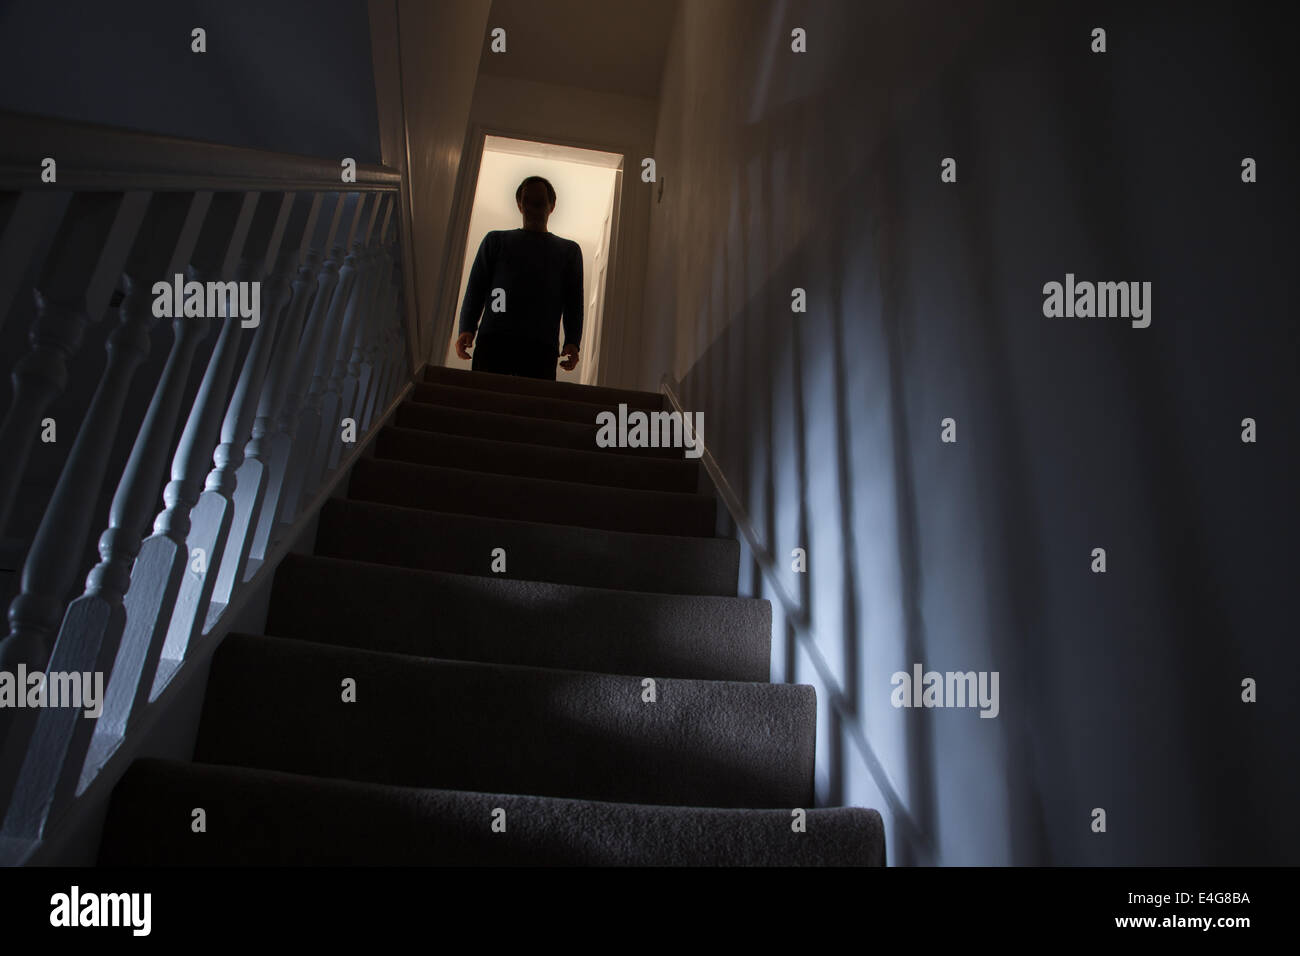 Silhouette of a man standing at the top of a stairway, shadows cast on the walls from the light below. Stock Photo